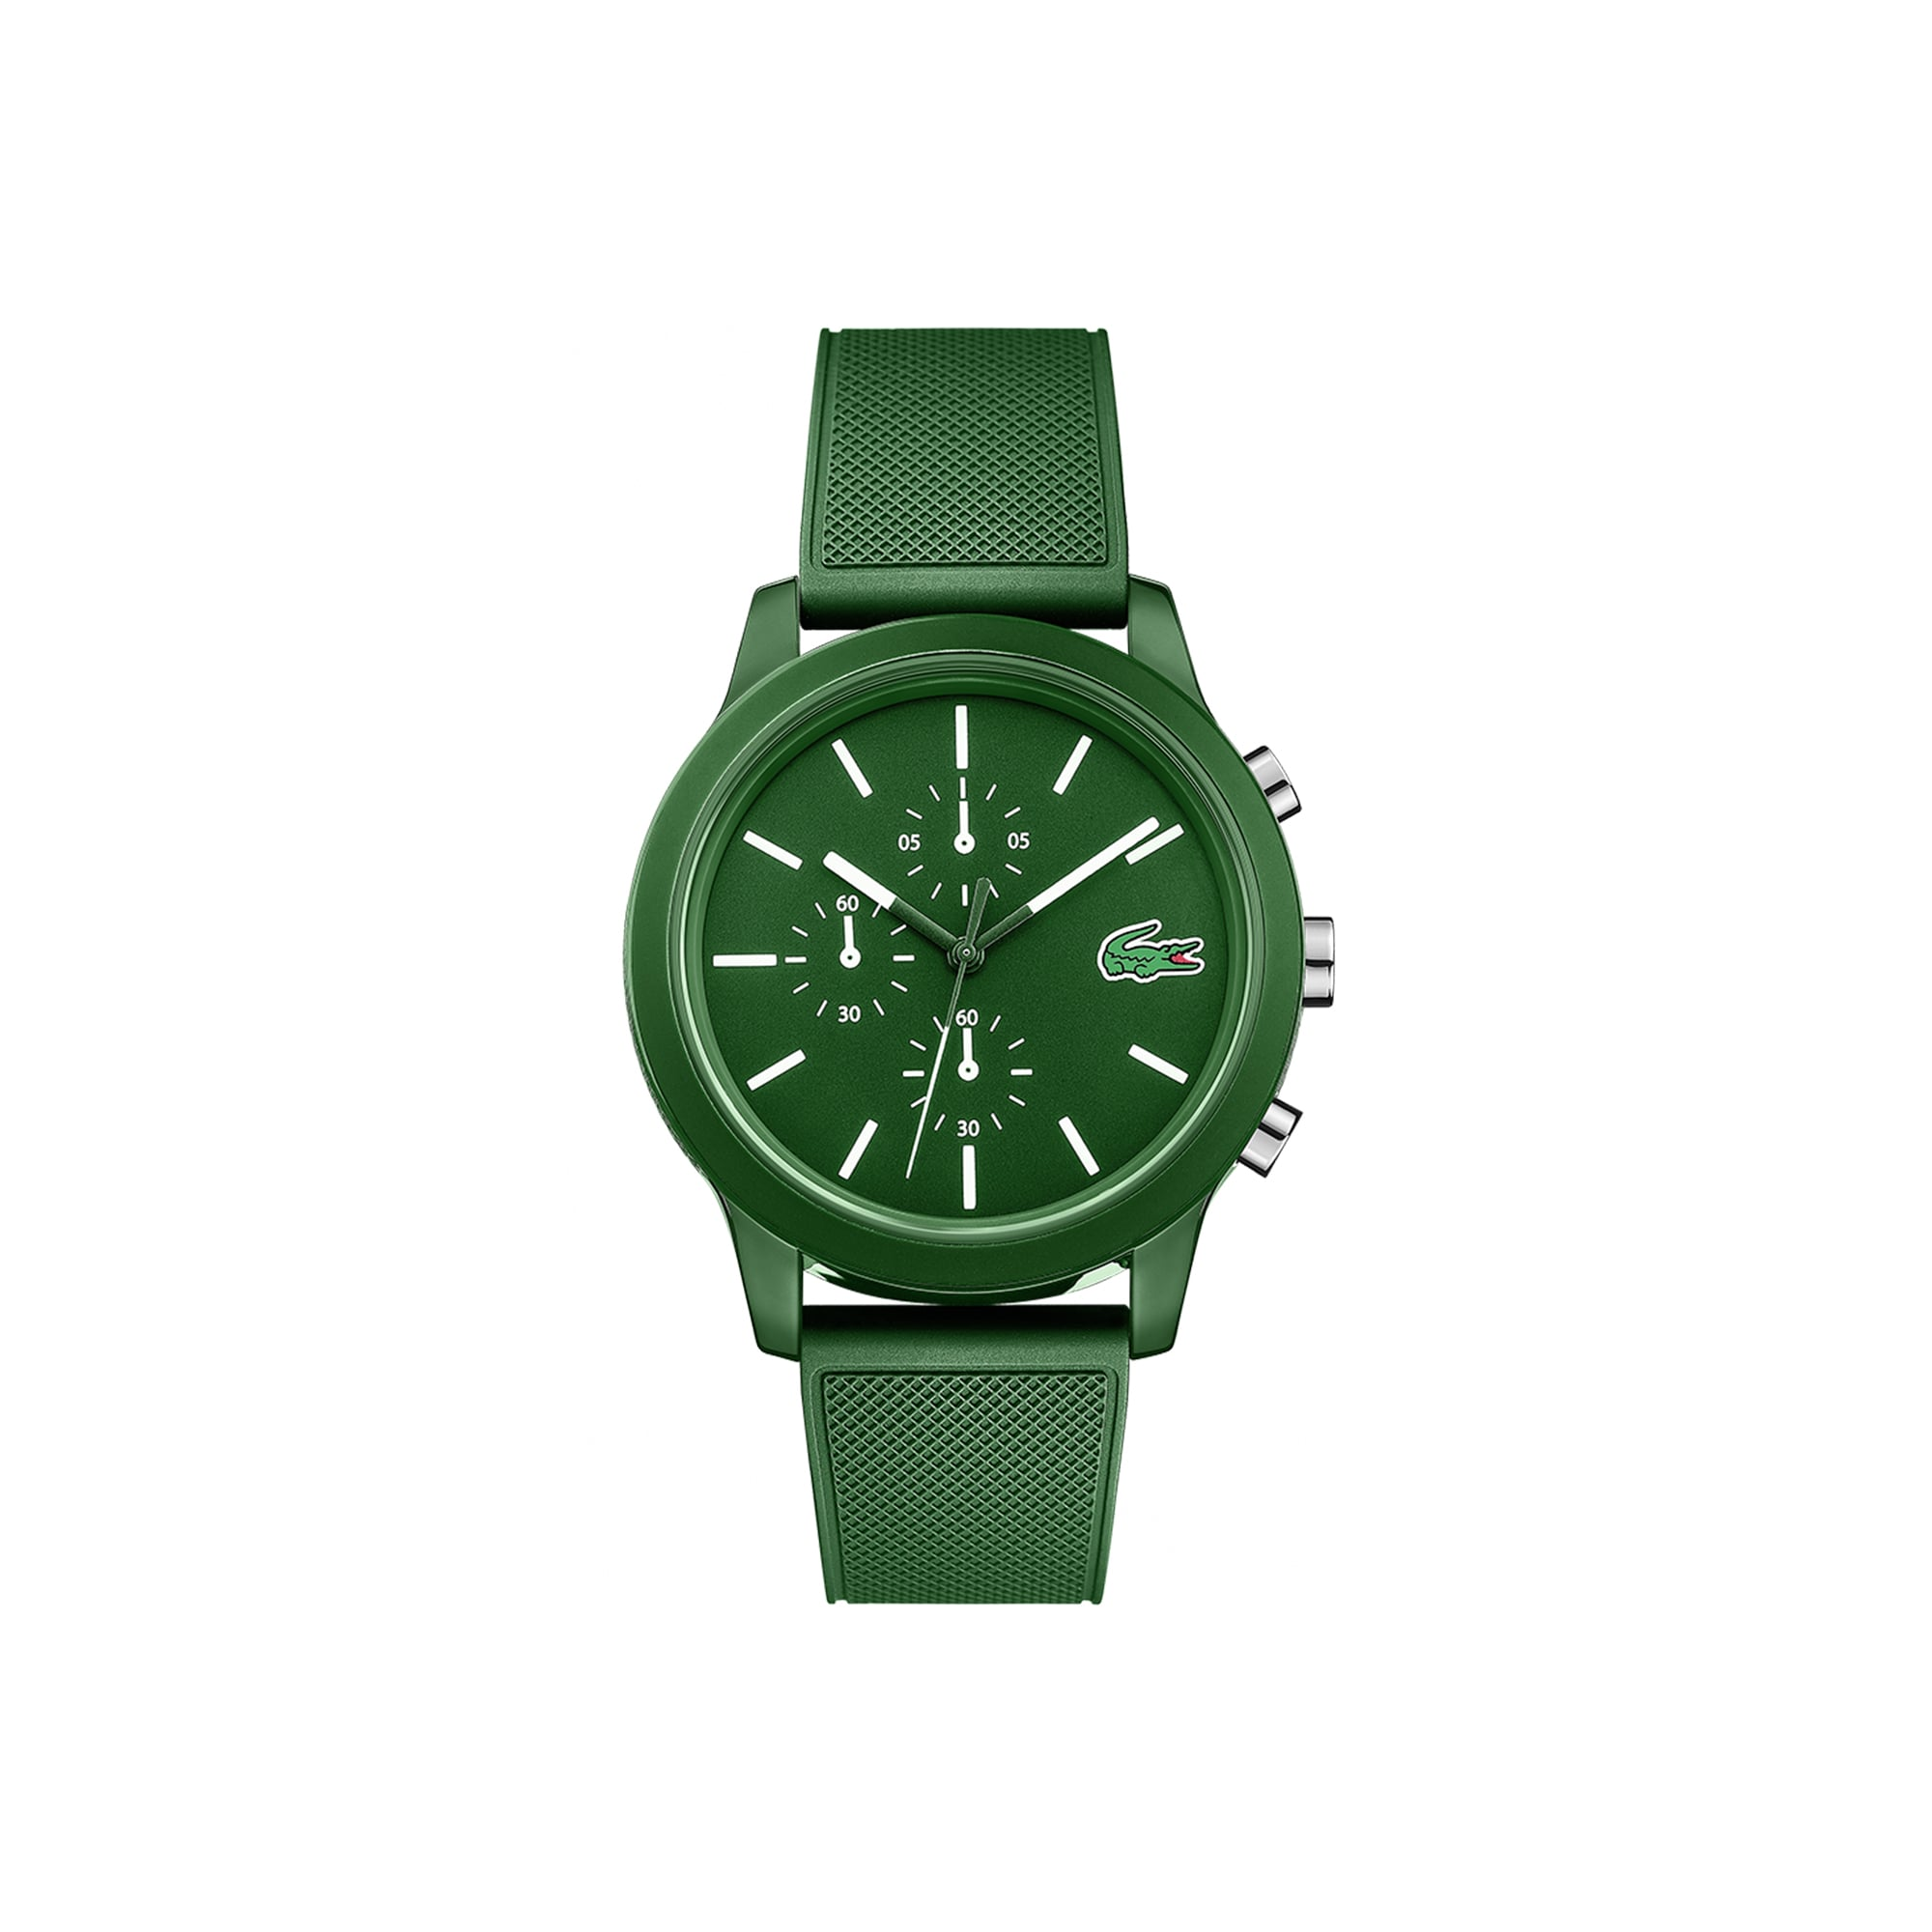 82a299737 Men's Lacoste 12.12 Watch with Red Silicone Strap. $95.00. Sport Edition